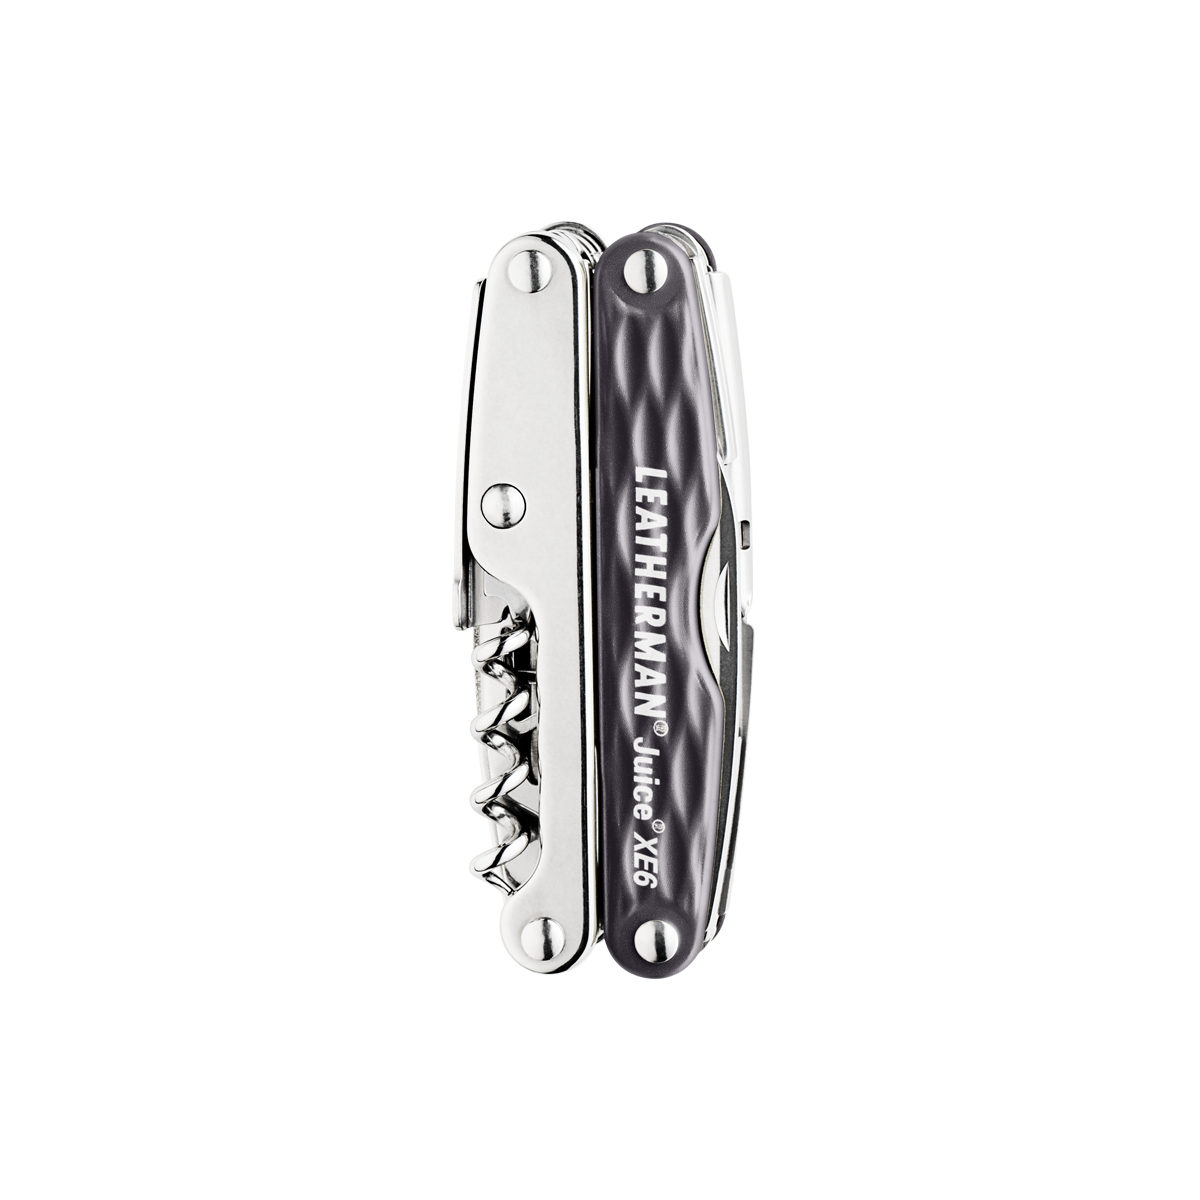 Leatherman juice xe6 multi-tool, granite, closed view